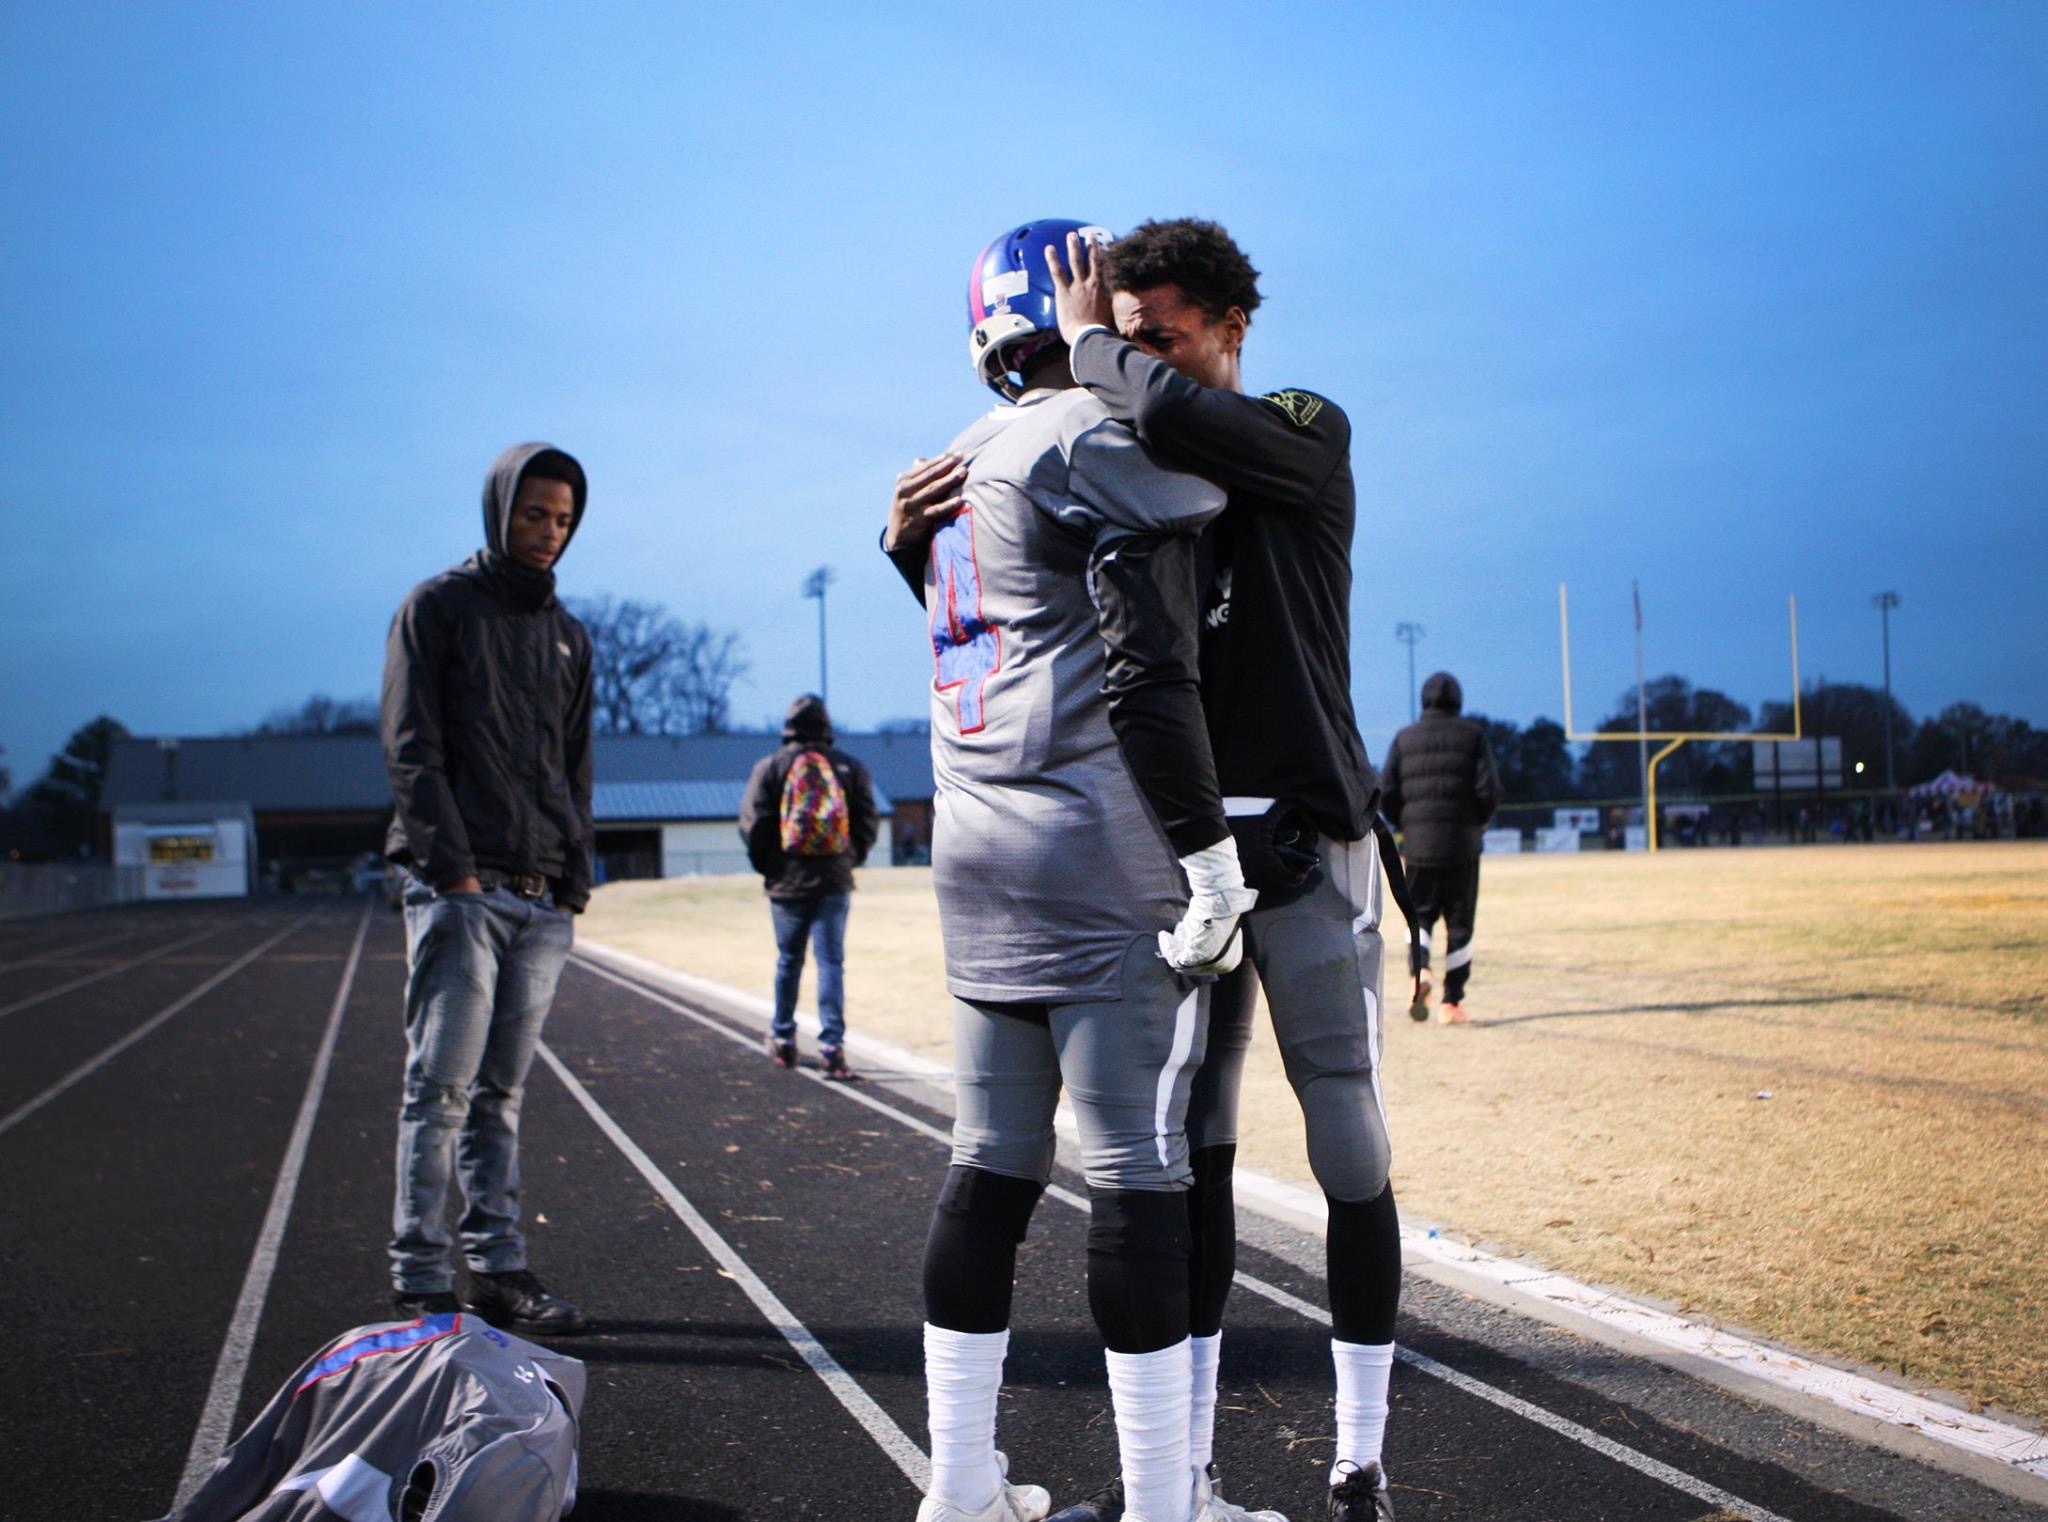 Norview's Kavon Lawson (4) and teammate Jamal Deaton embrace after losing to Highland Springs in the 5A South Region championship game, Saturday, Dec. 4, 2016 in Highland Springs, Va.